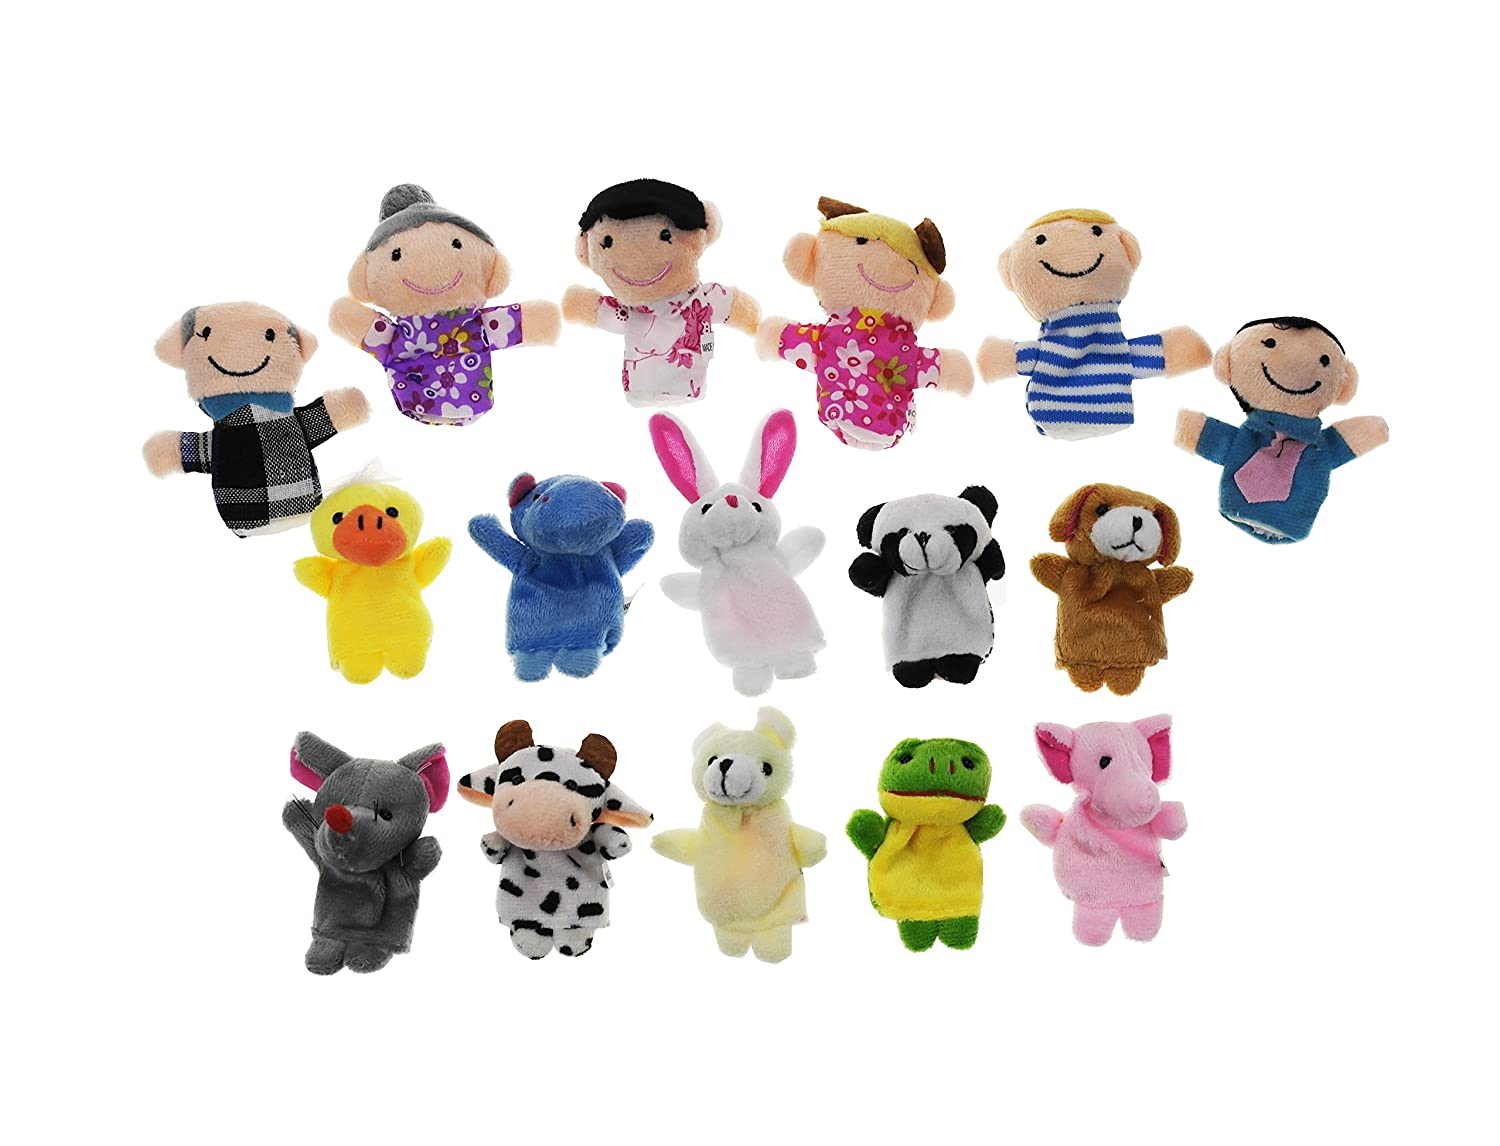 Shxstore Cute Velvet Animal and Family People Finger Puppets Set for Toddlers, Pack of 16